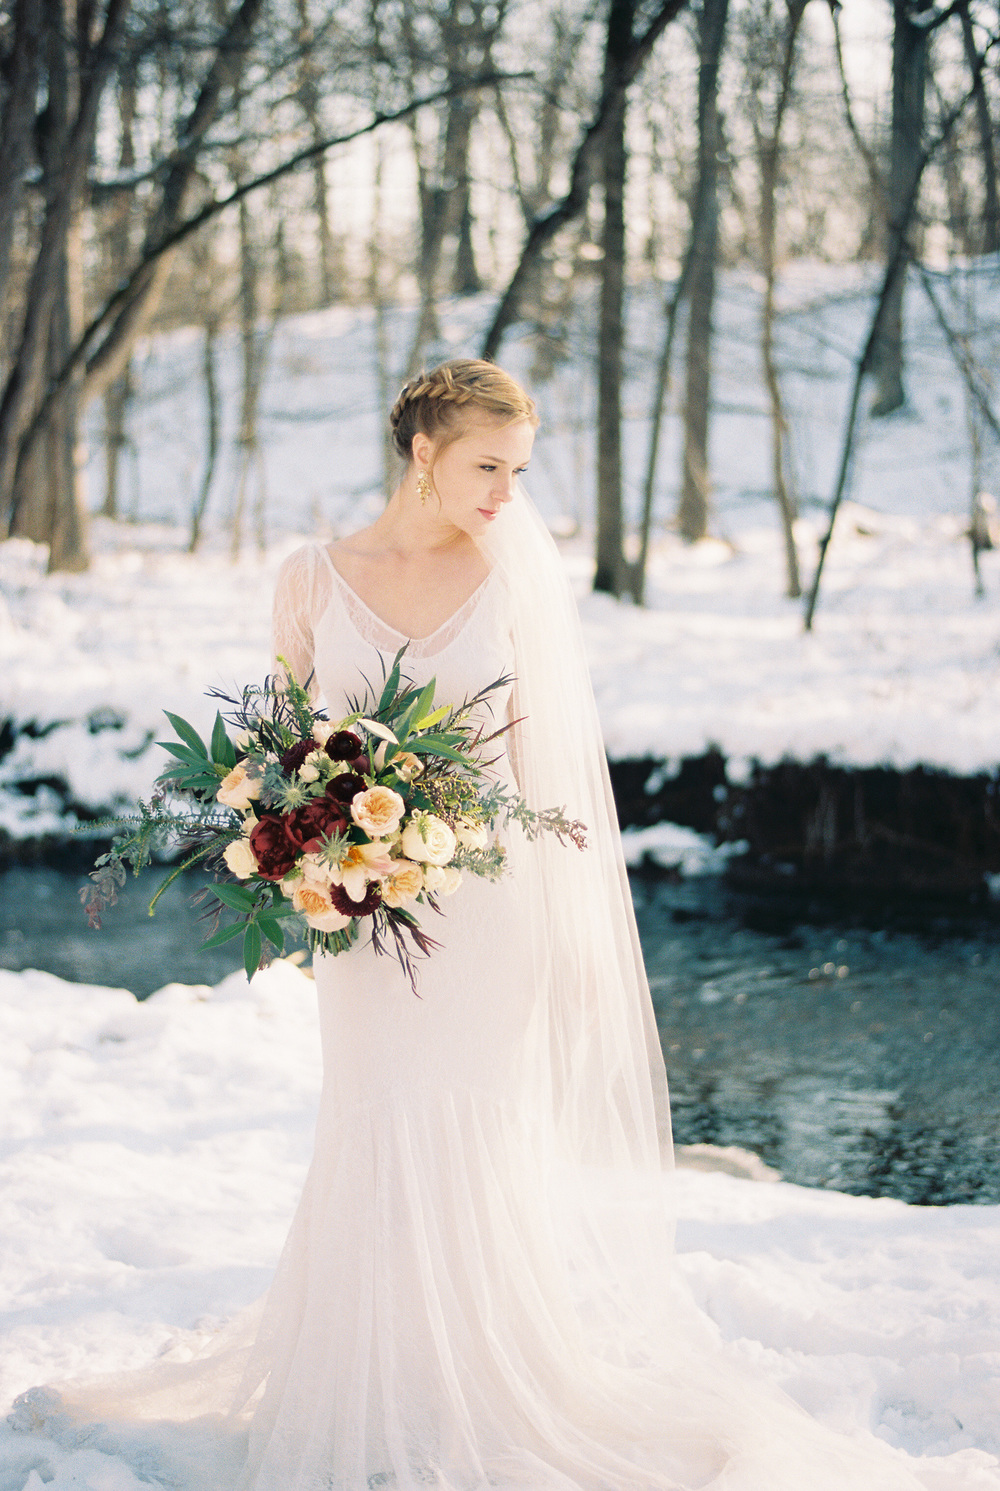 Winter bridal wedding hair and makeup Chicago, Illinois IL